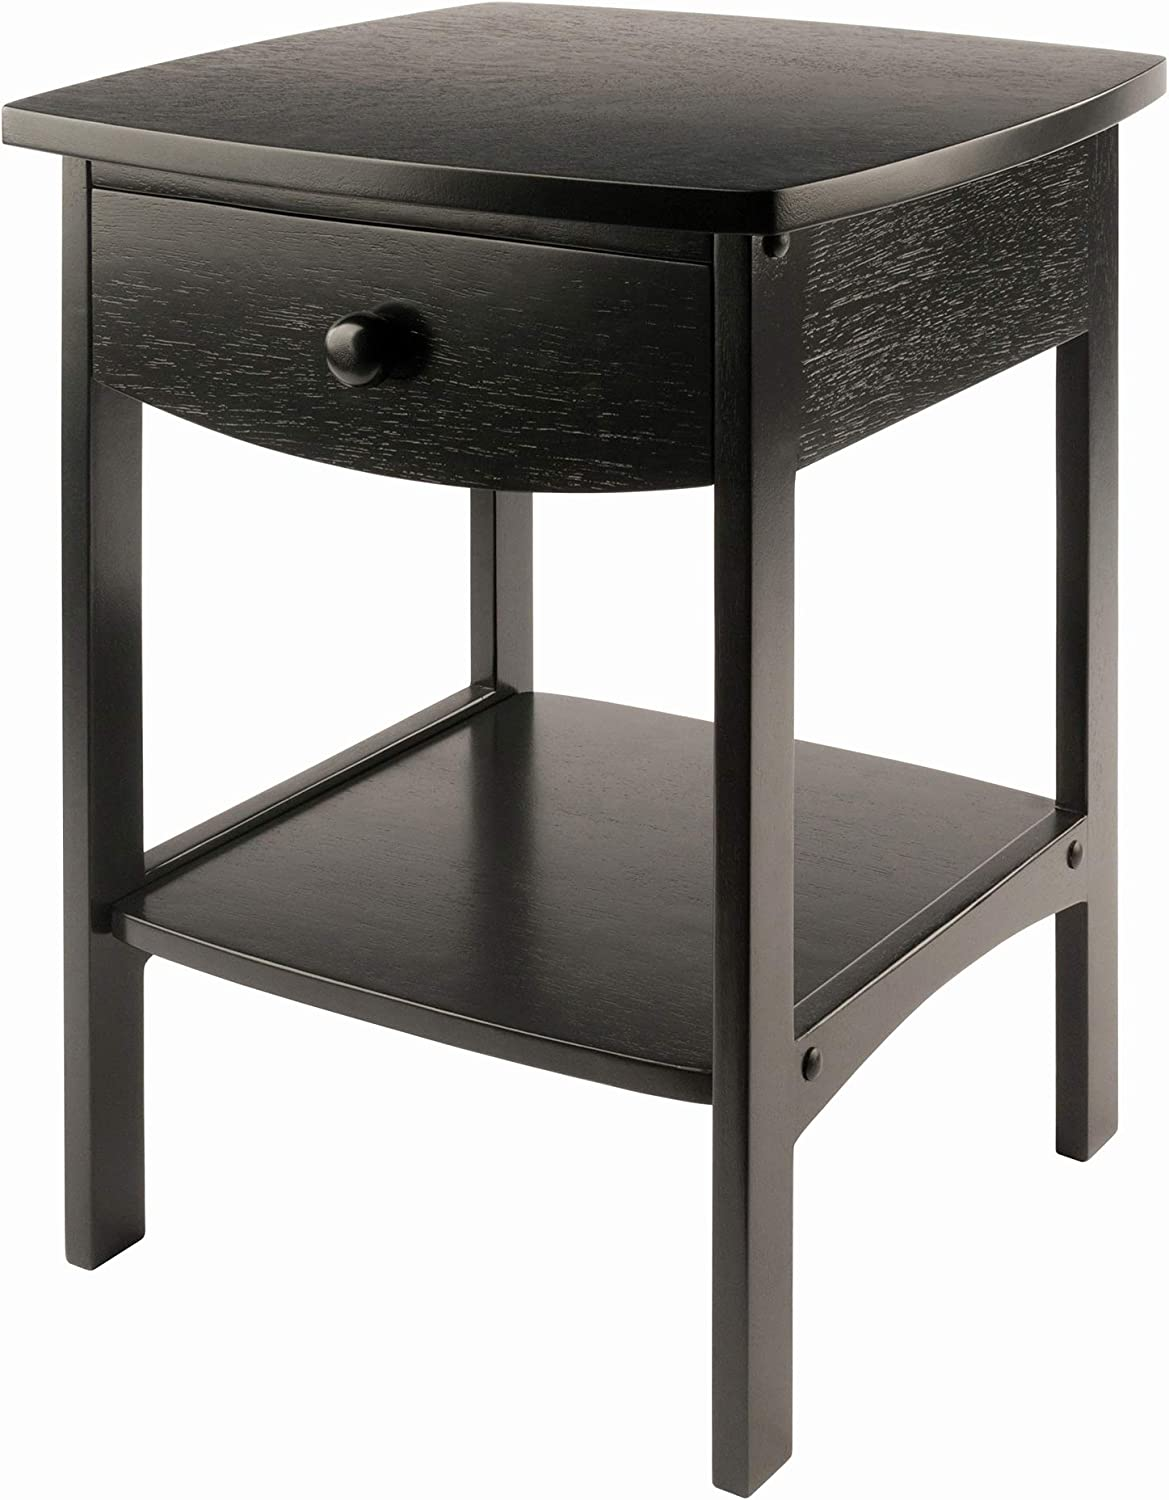 - Amazon.com: Winsome Wood Claire Accent Table, Black: Kitchen & Dining